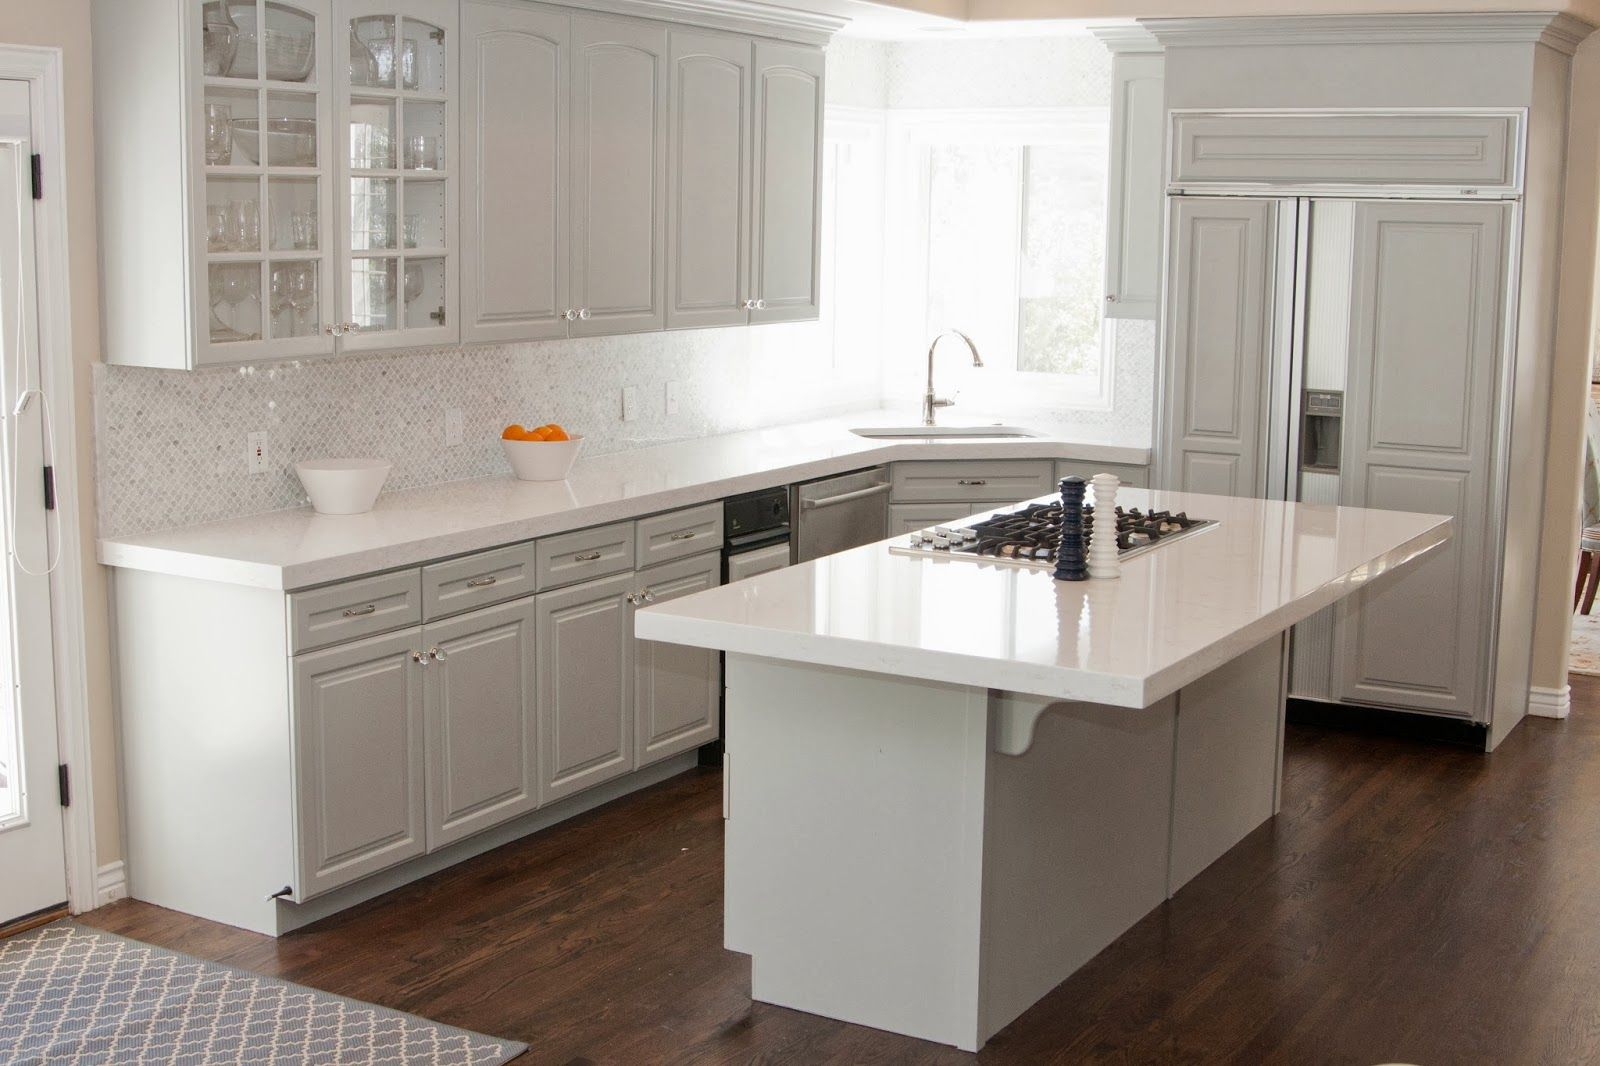 Countertop ideas for white cabinets google search for Search kitchen designs